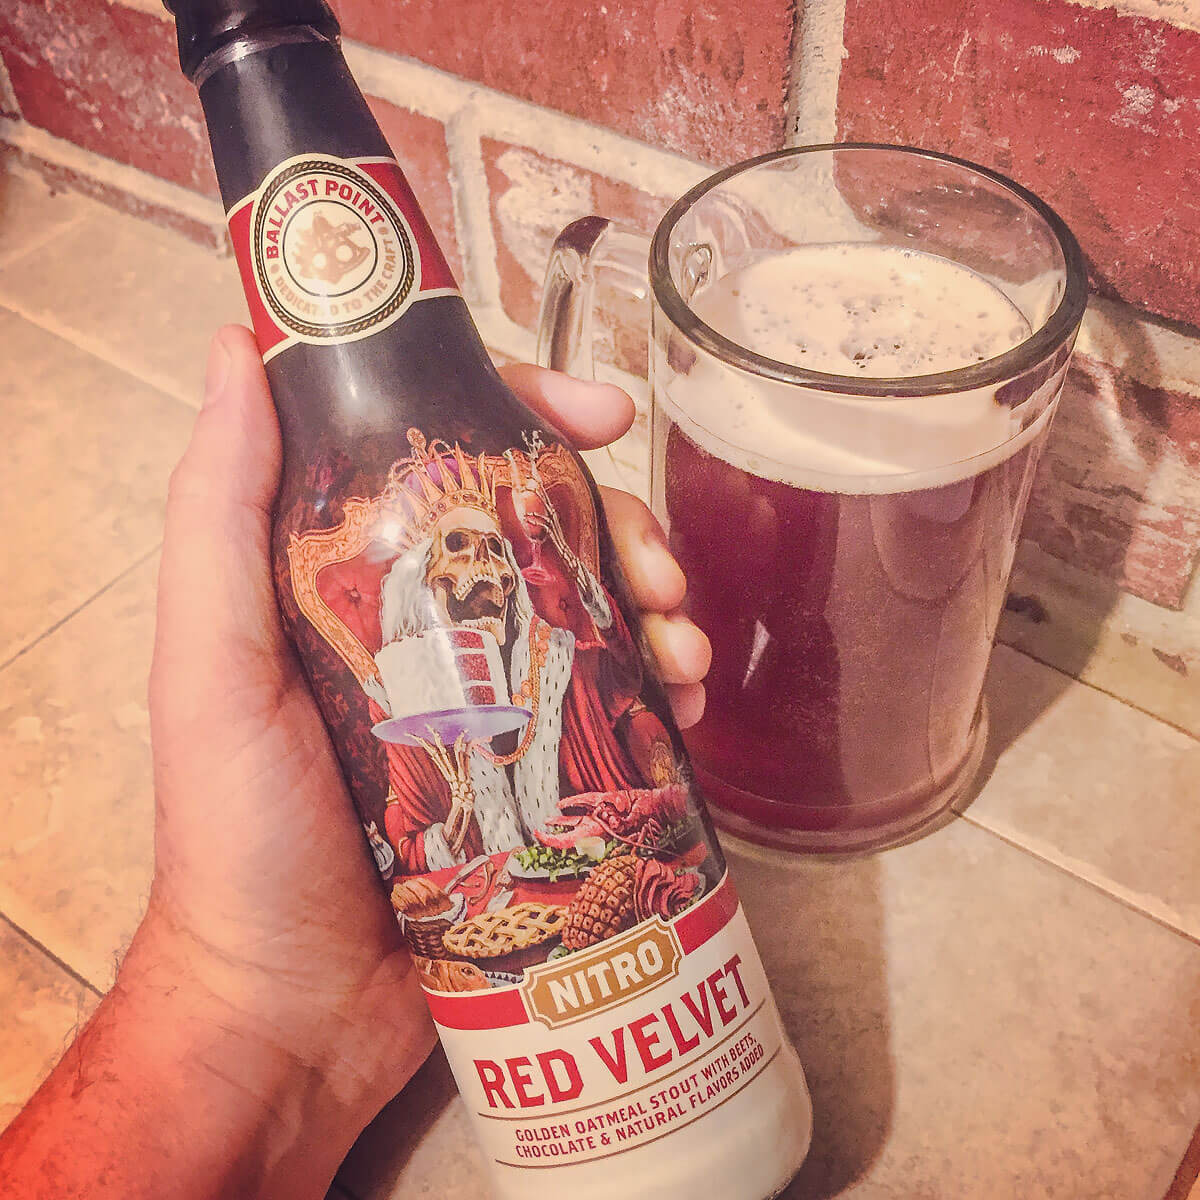 Red Velvet (Nitro), an English-style Oatmeal Stout by Ballast Point Brewing Company